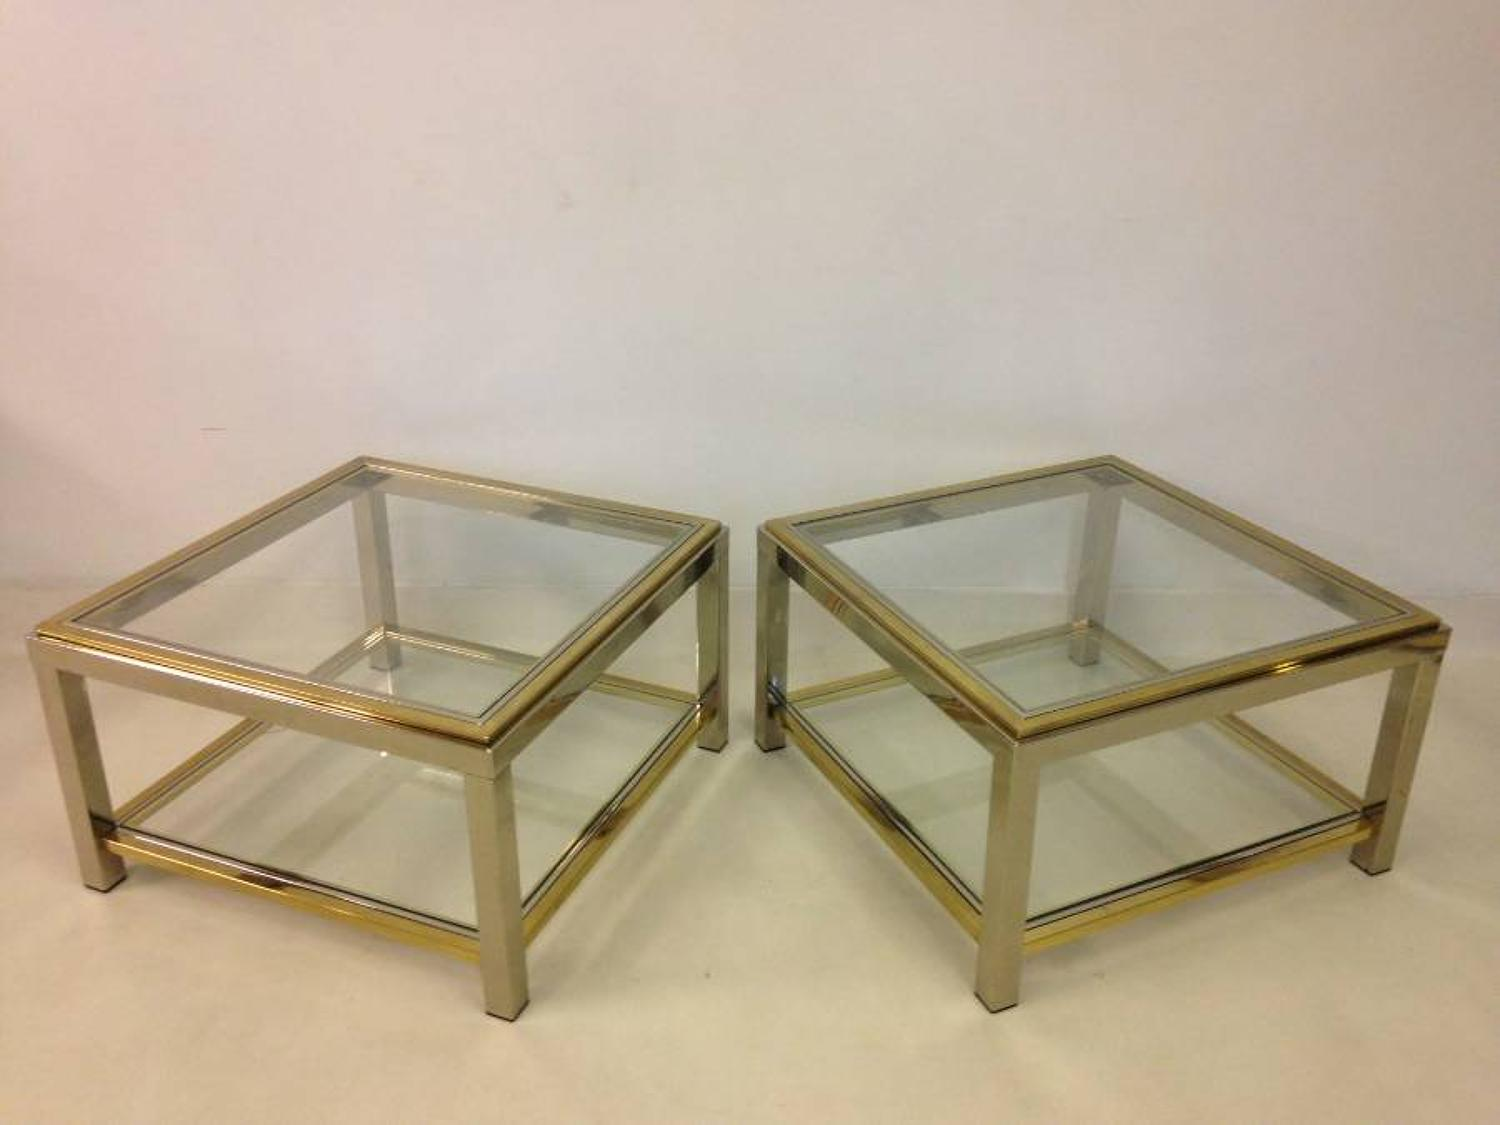 A pair of steel and gold metal side tables